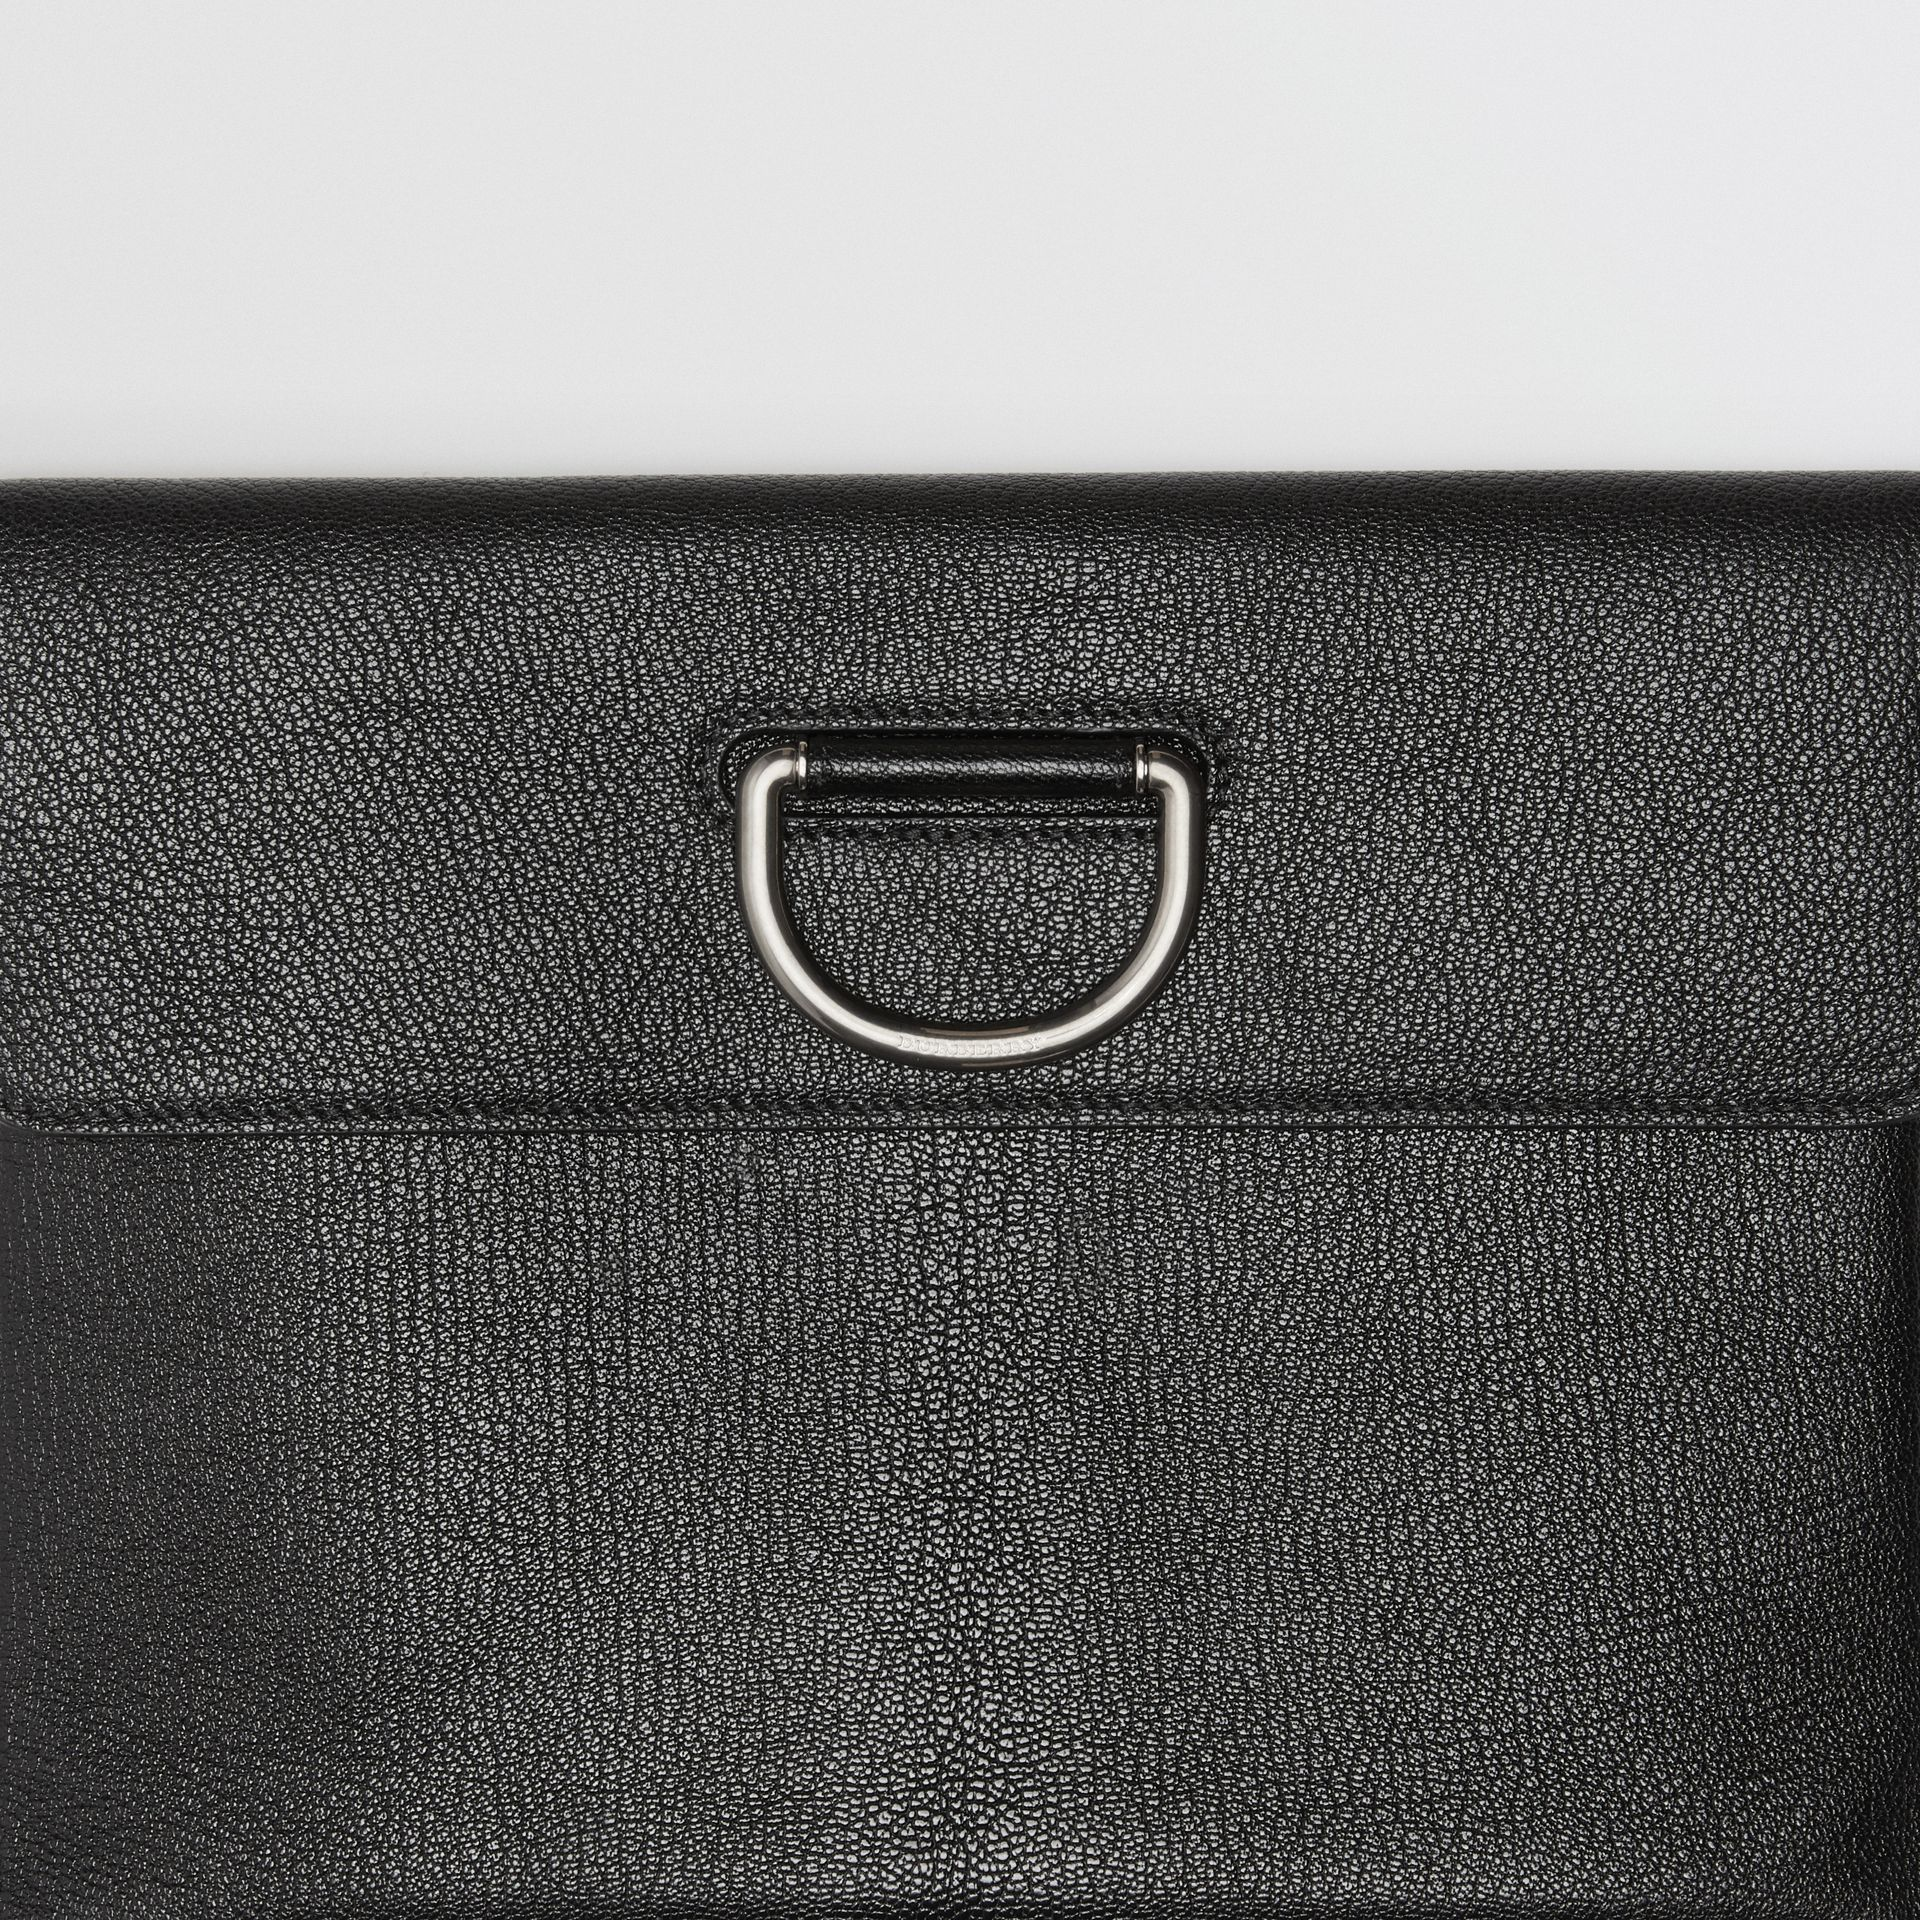 D-ring Leather Pouch in Black - Women | Burberry Singapore - gallery image 1